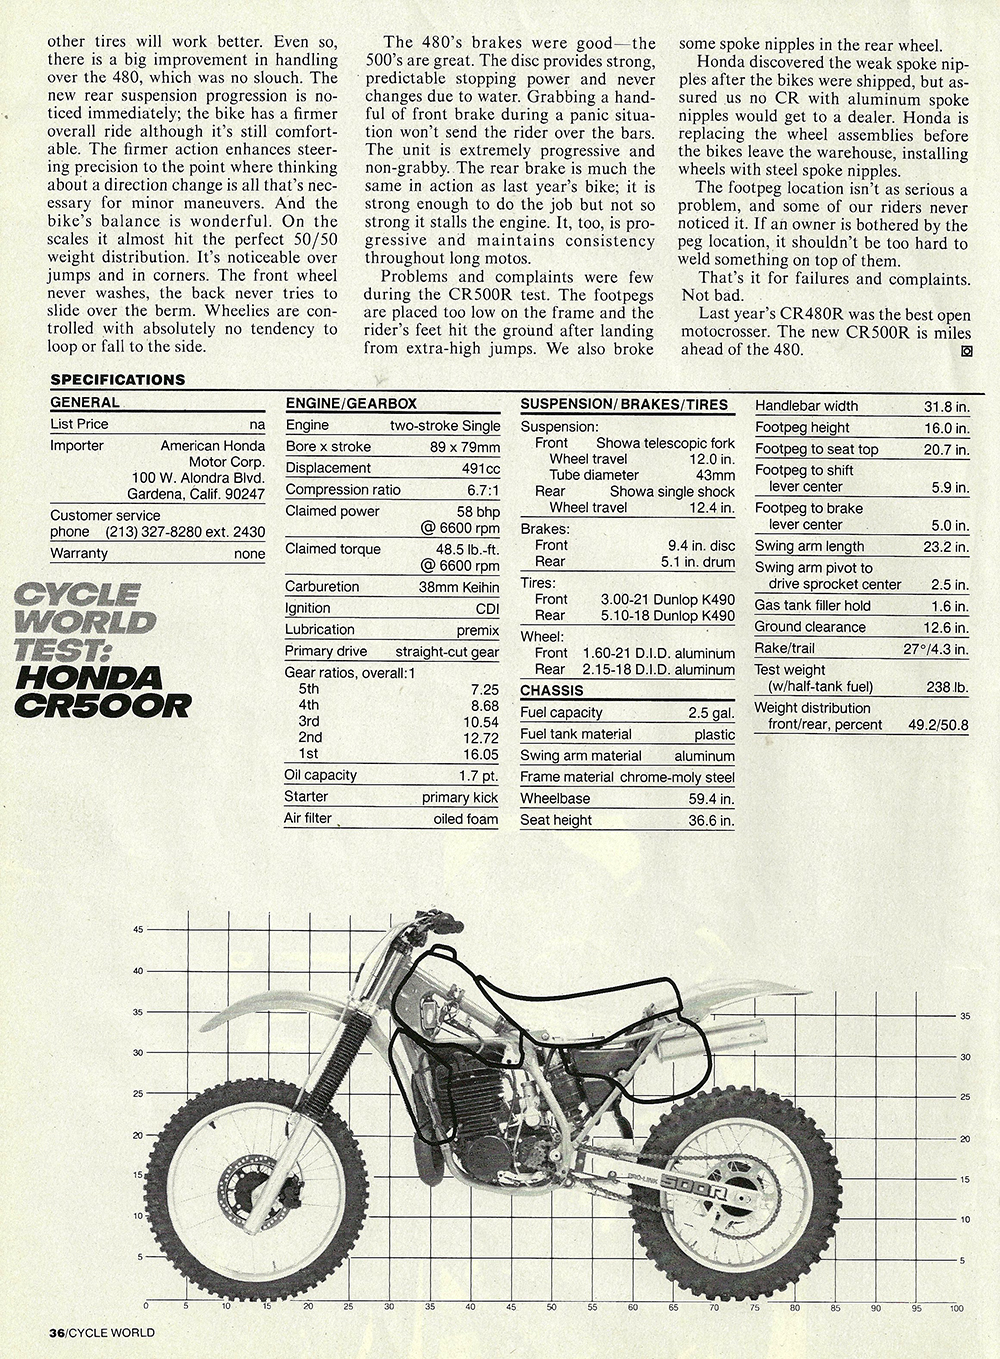 1983 Honda CR500R road test 05.jpg